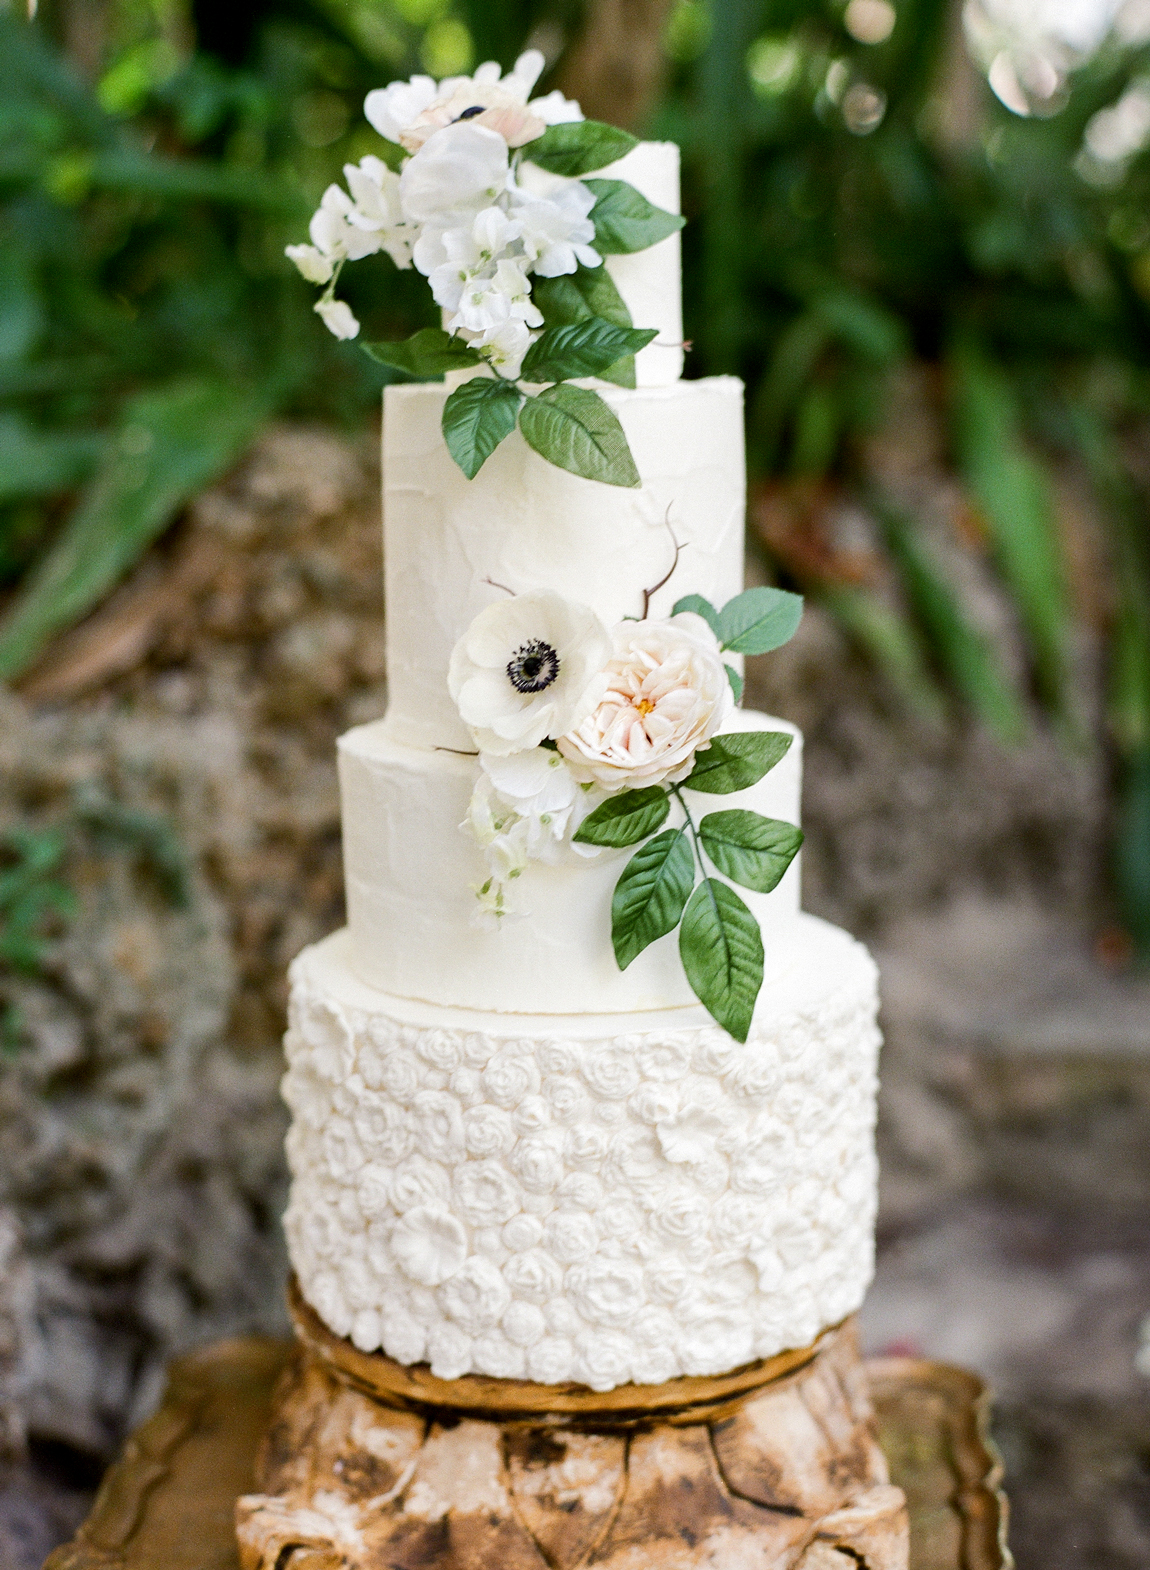 four tiered white frosted bas-relief wedding cake with floral accents